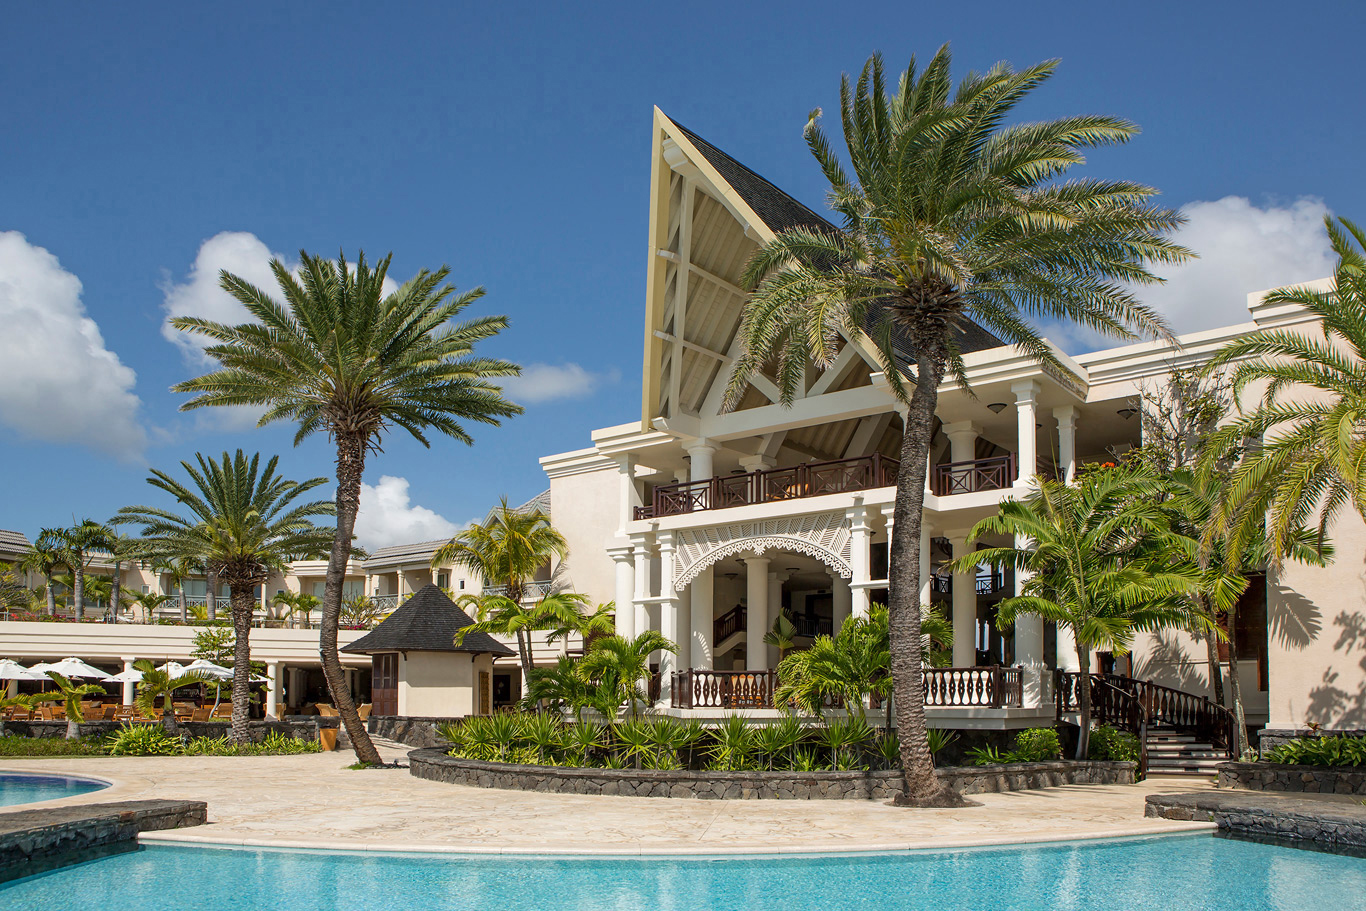 mauritius-the-residence-hirsch-bedner